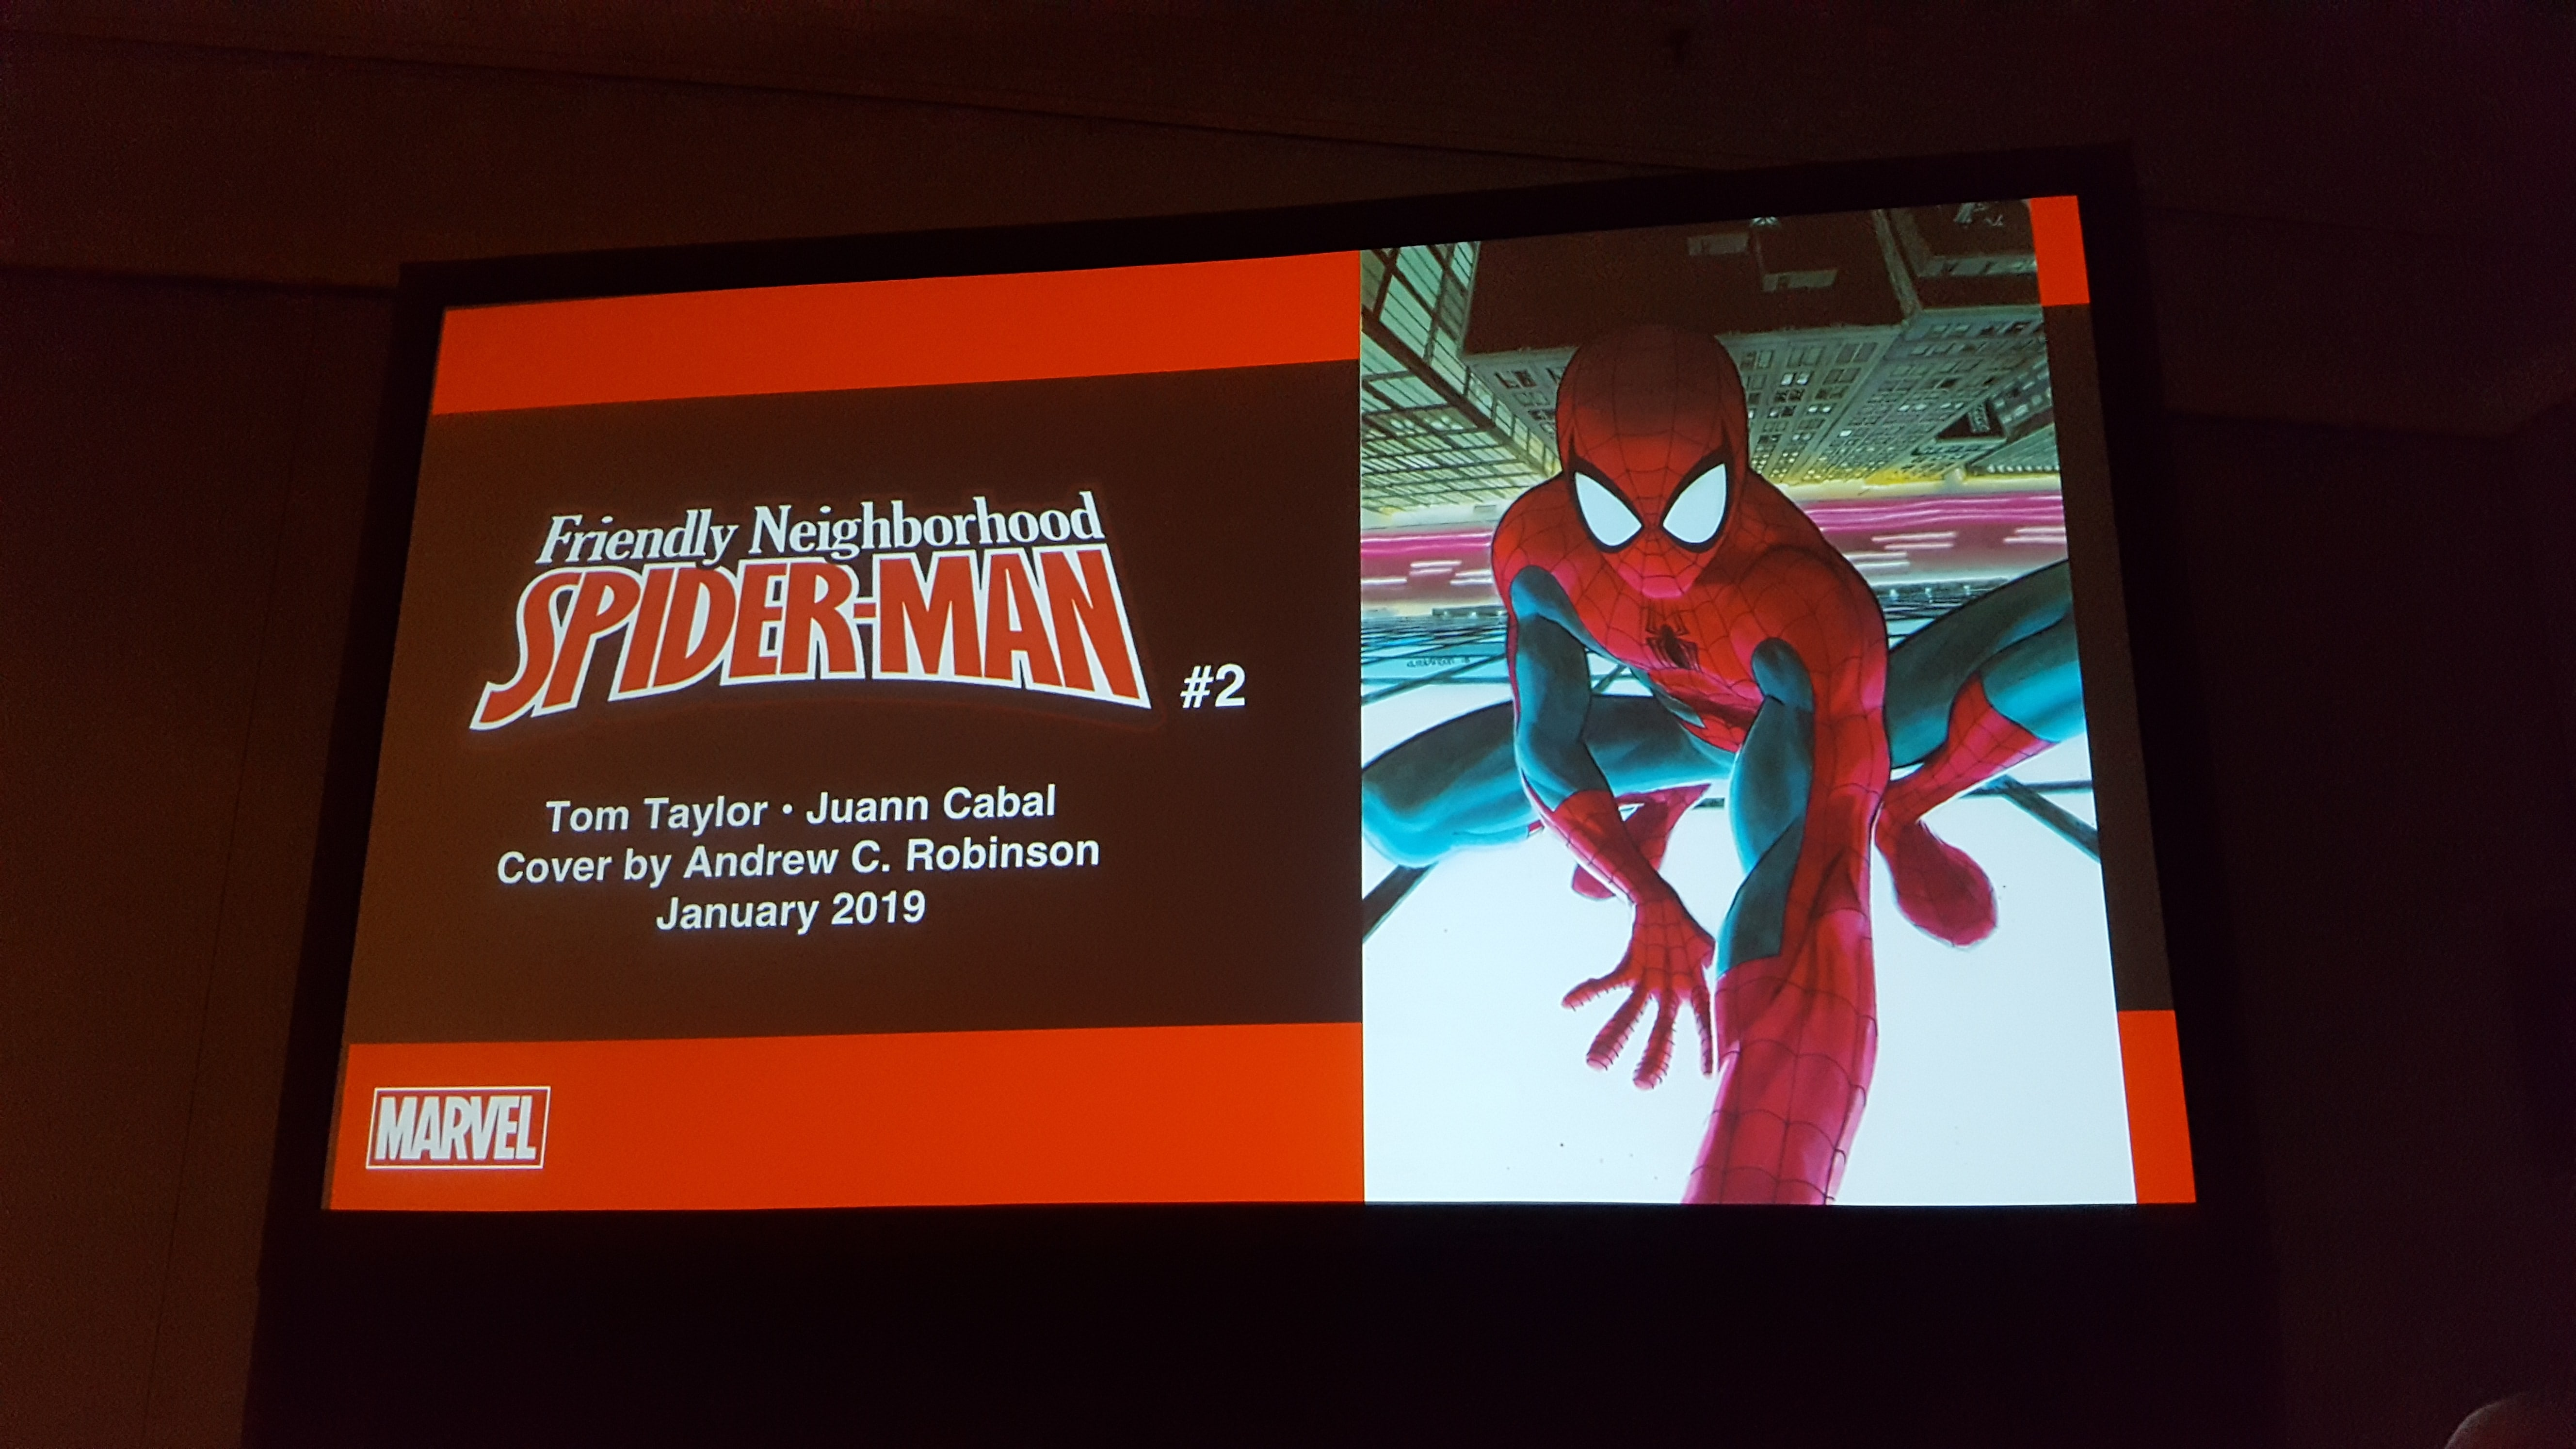 'Friendly Neighborhood Spider-Man' by Tom Taylor and Juan Cabal coming in January 2019 [NYCC 2018]